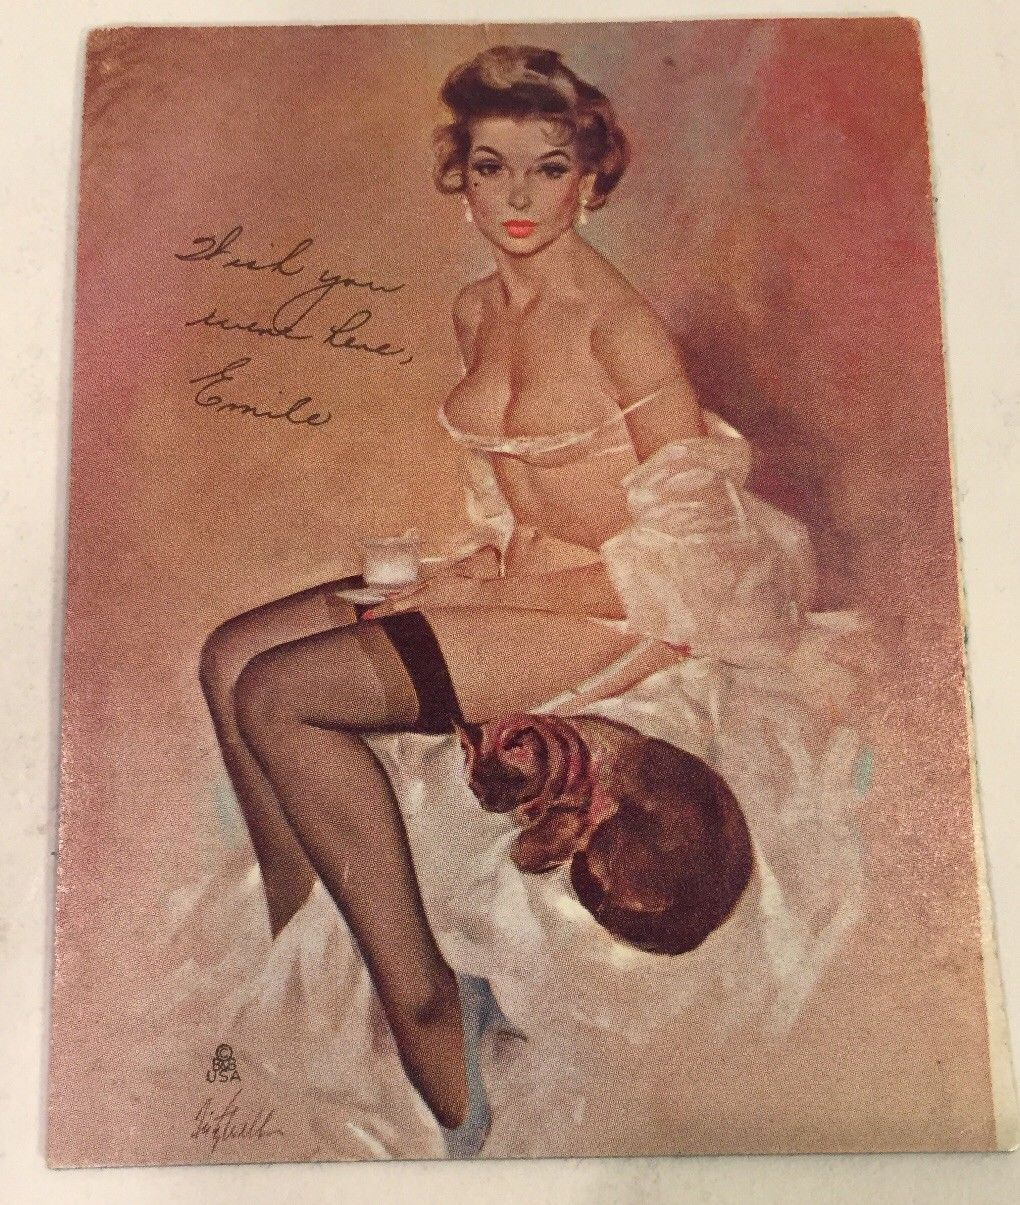 1940s Real Porn - 1940s PINUP SEMI NUDE CARD Emilia with a Pussy Cat Tasteful Soft Porn